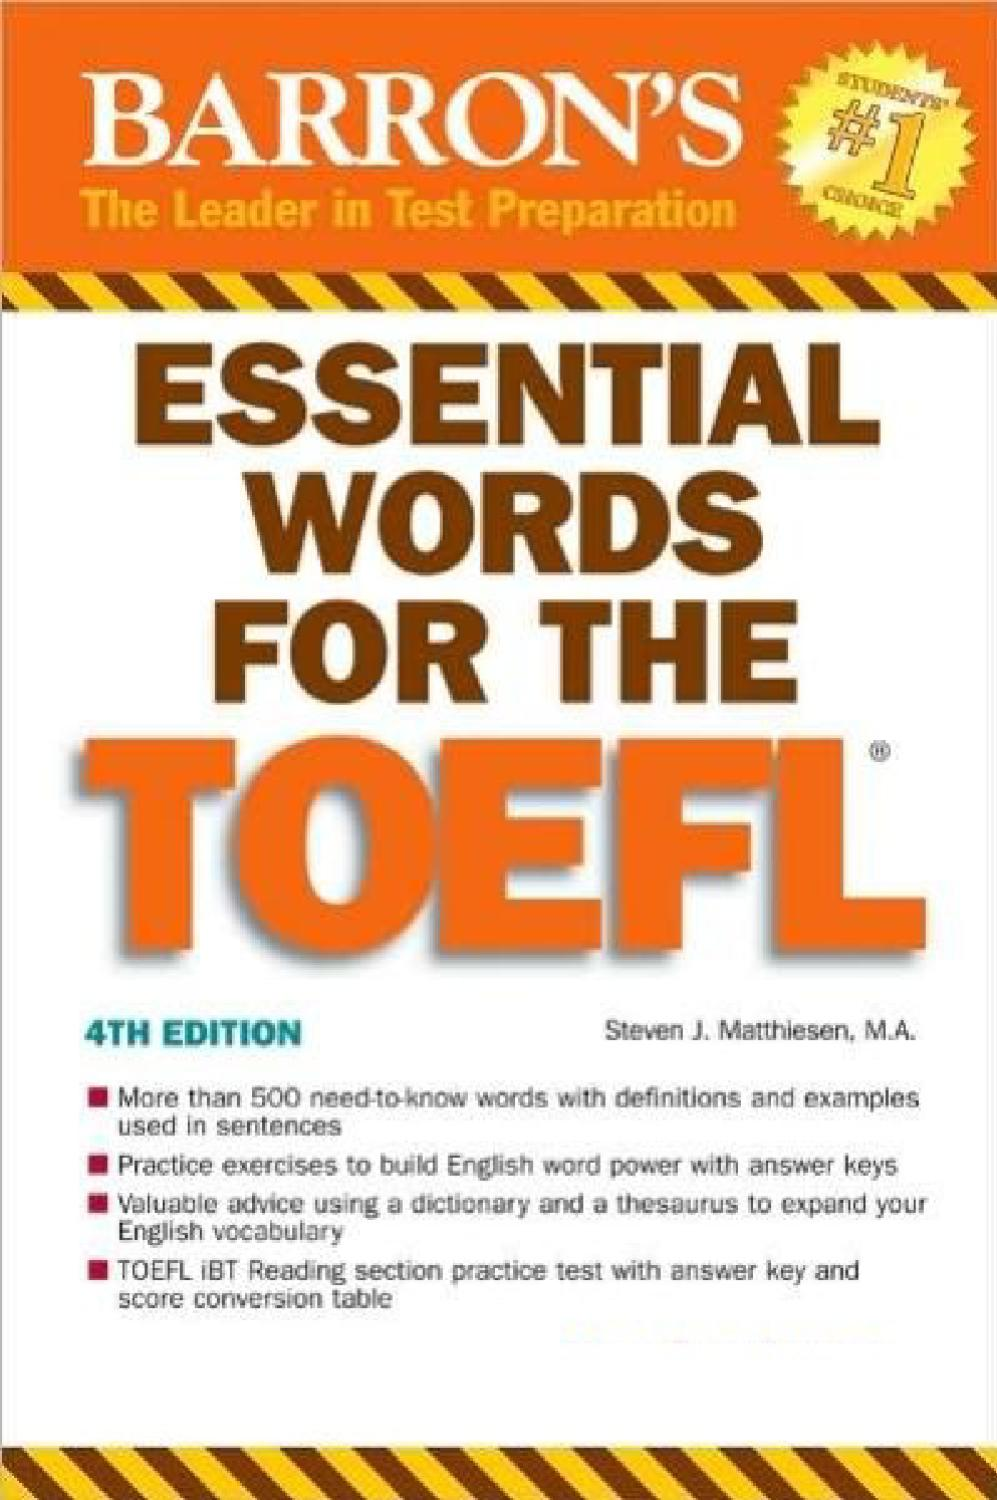 Would it be advantageous for me to take the TOEFL?